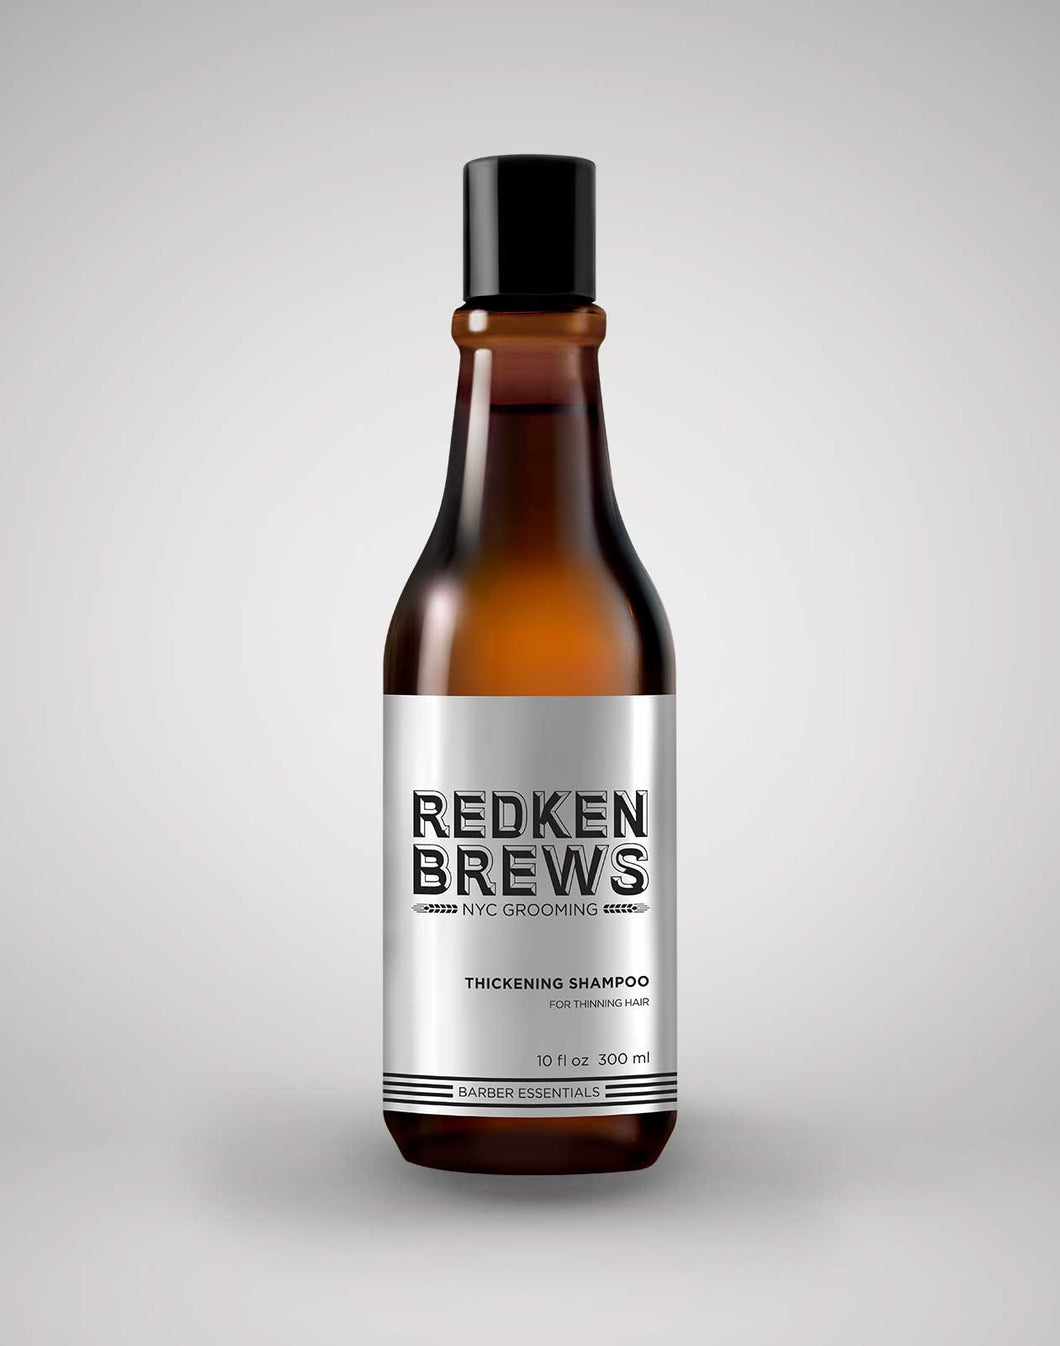 REDKEN BREWS THICKENING SHAMPOO - The Color Studio & Salon